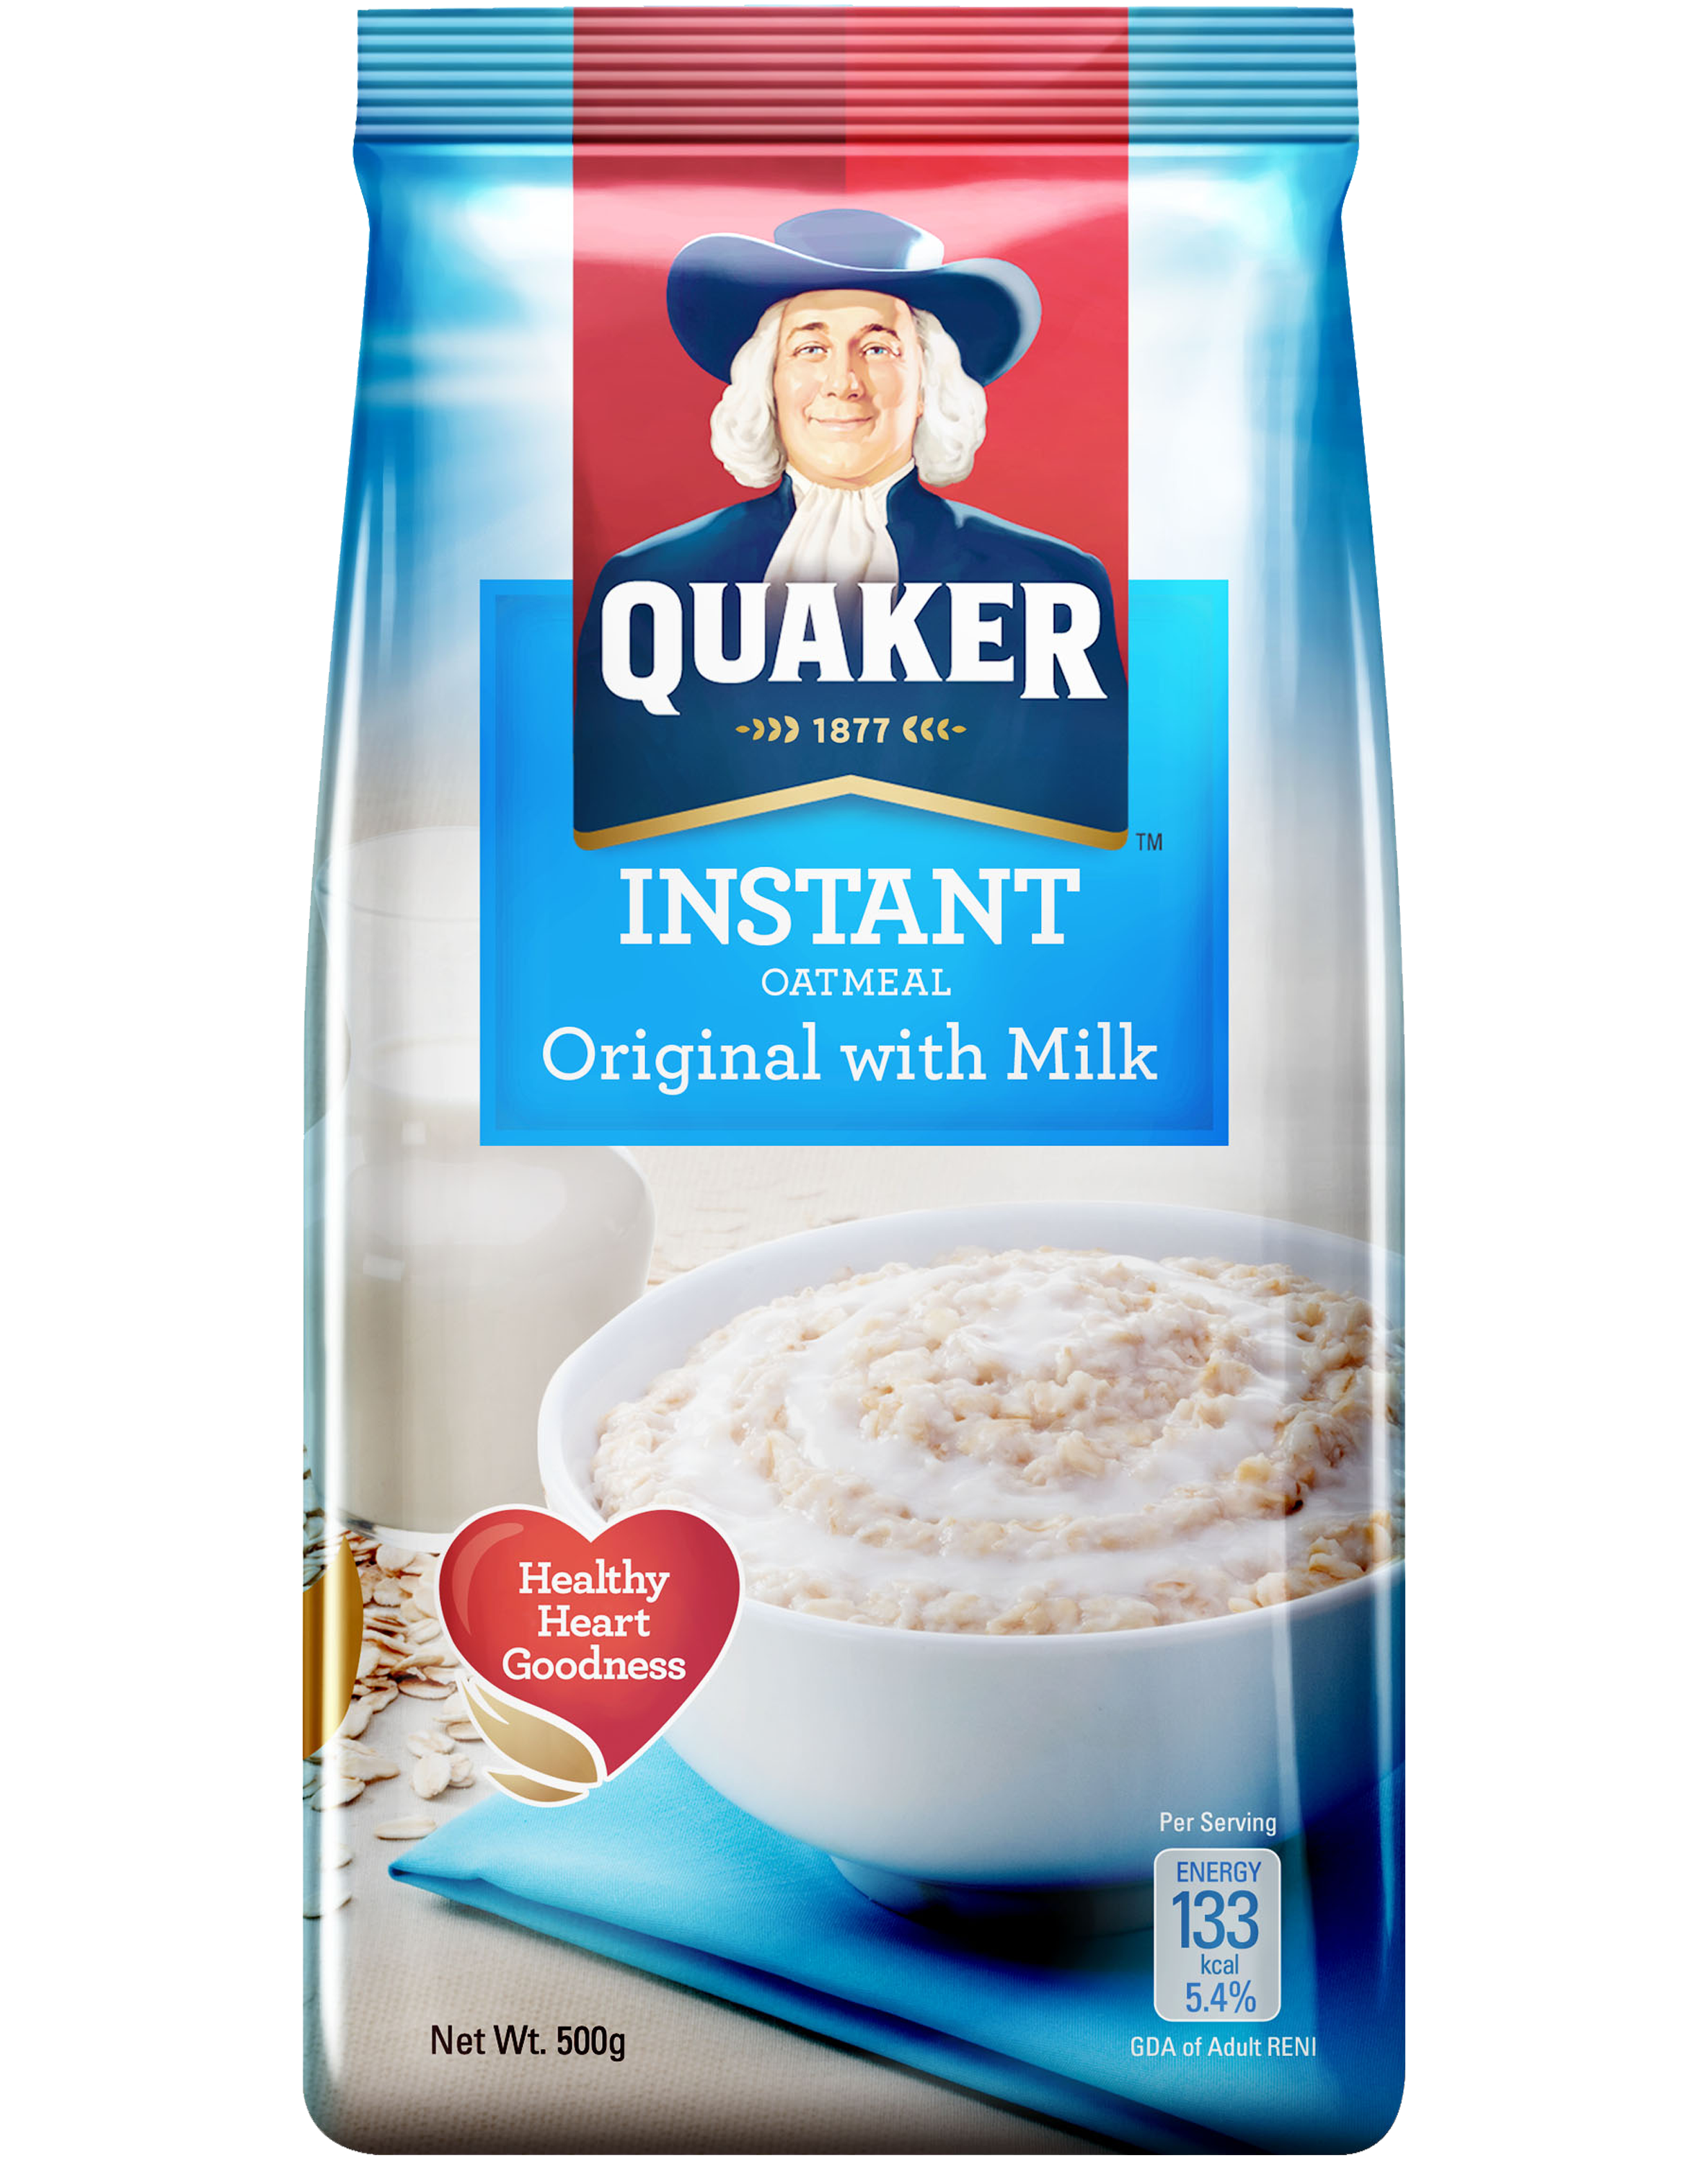 Oatmeal clipart quaker oats, Oatmeal quaker oats Transparent.